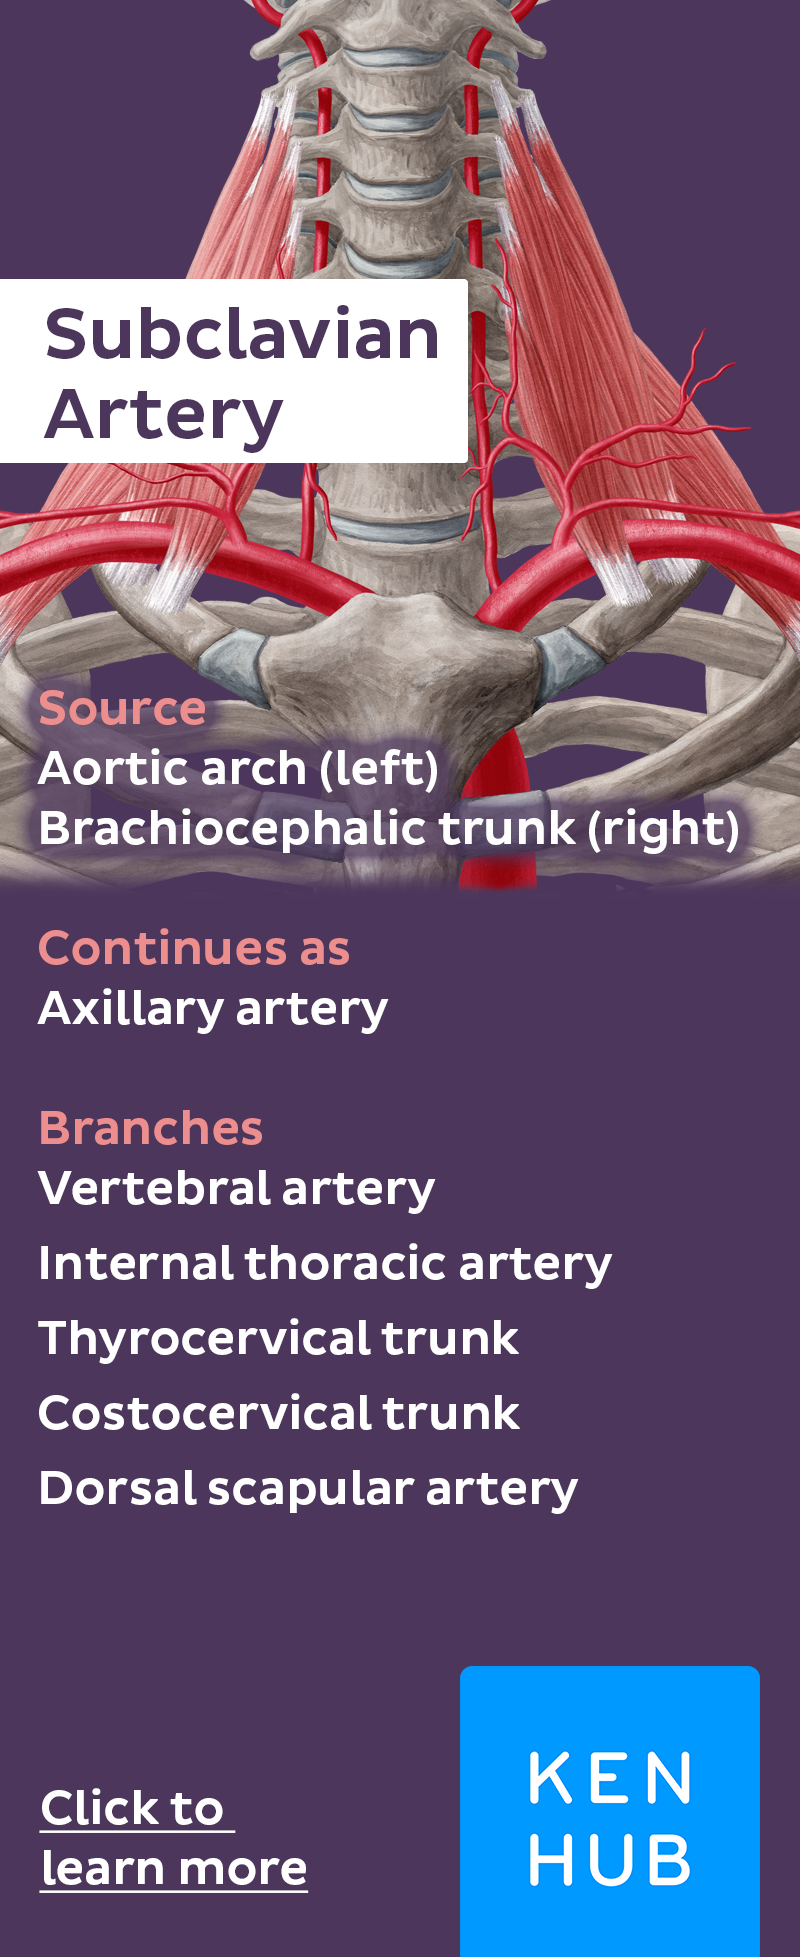 Subclavian Artery And Its Branches Pinterest Subclavian Artery